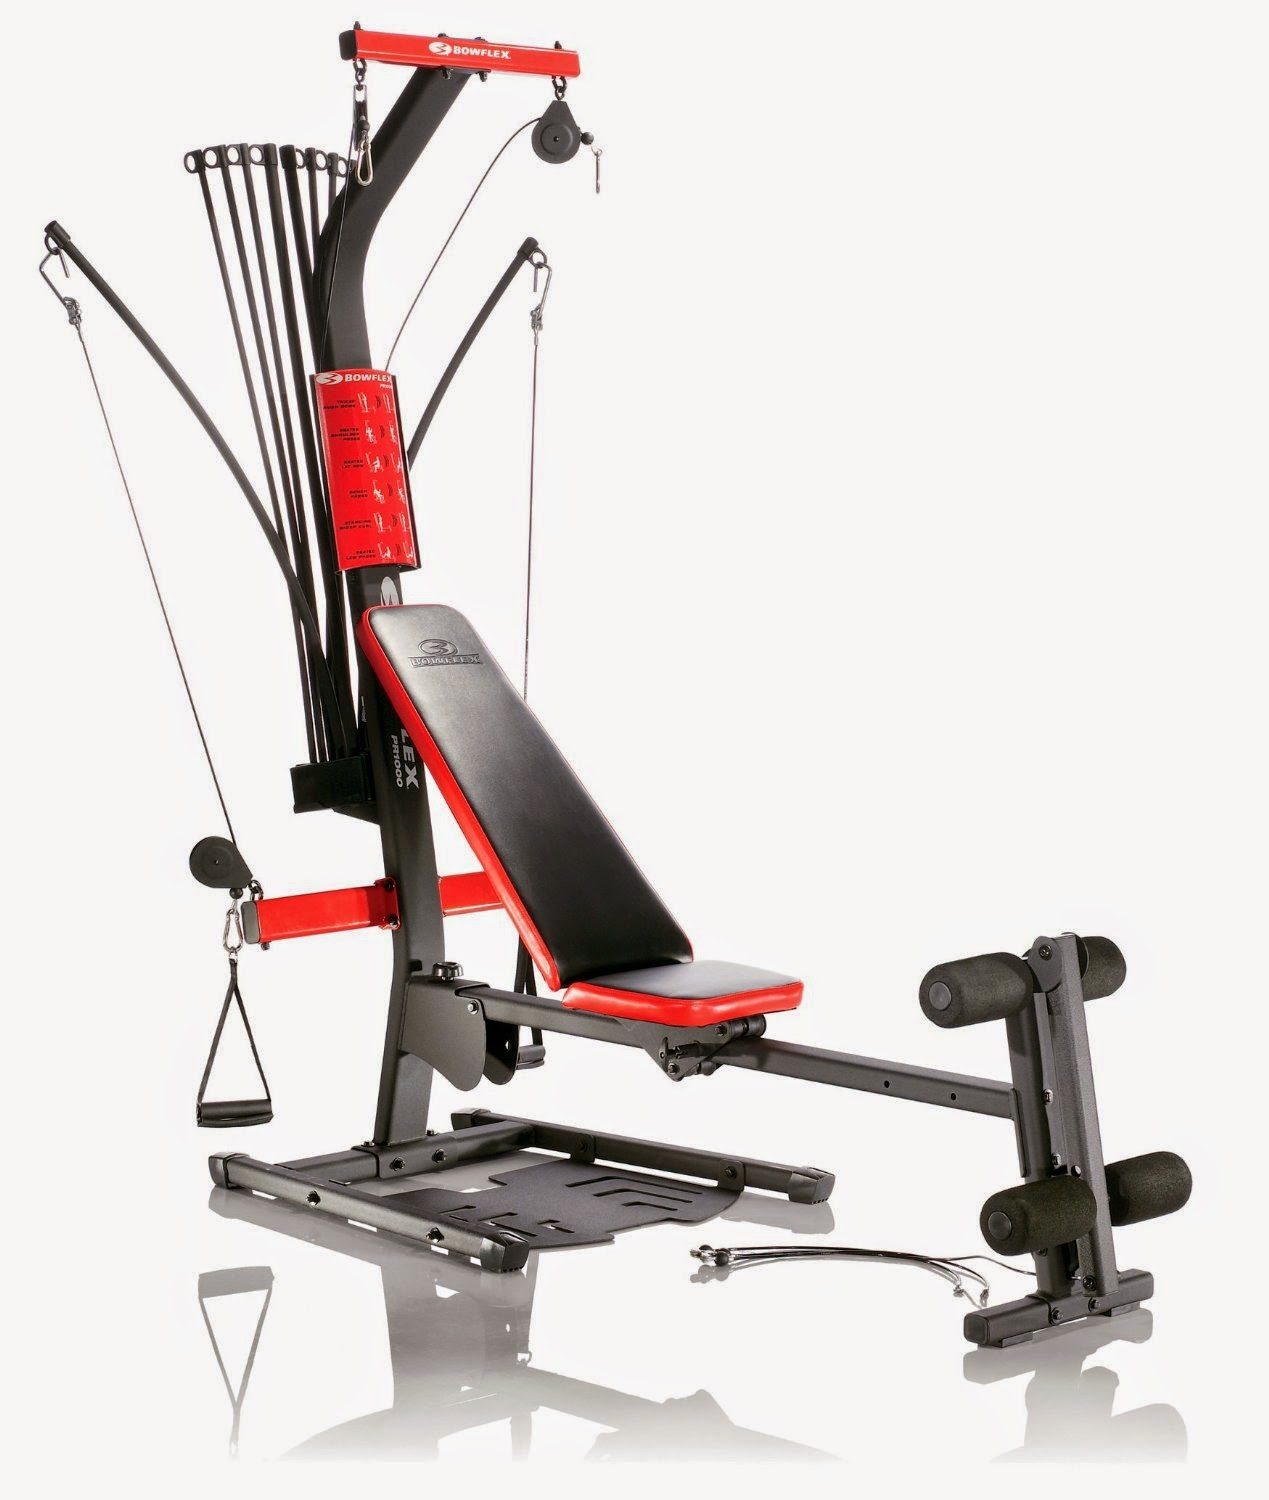 health and fitness den bowflex pr1000 versus bowflex. Black Bedroom Furniture Sets. Home Design Ideas